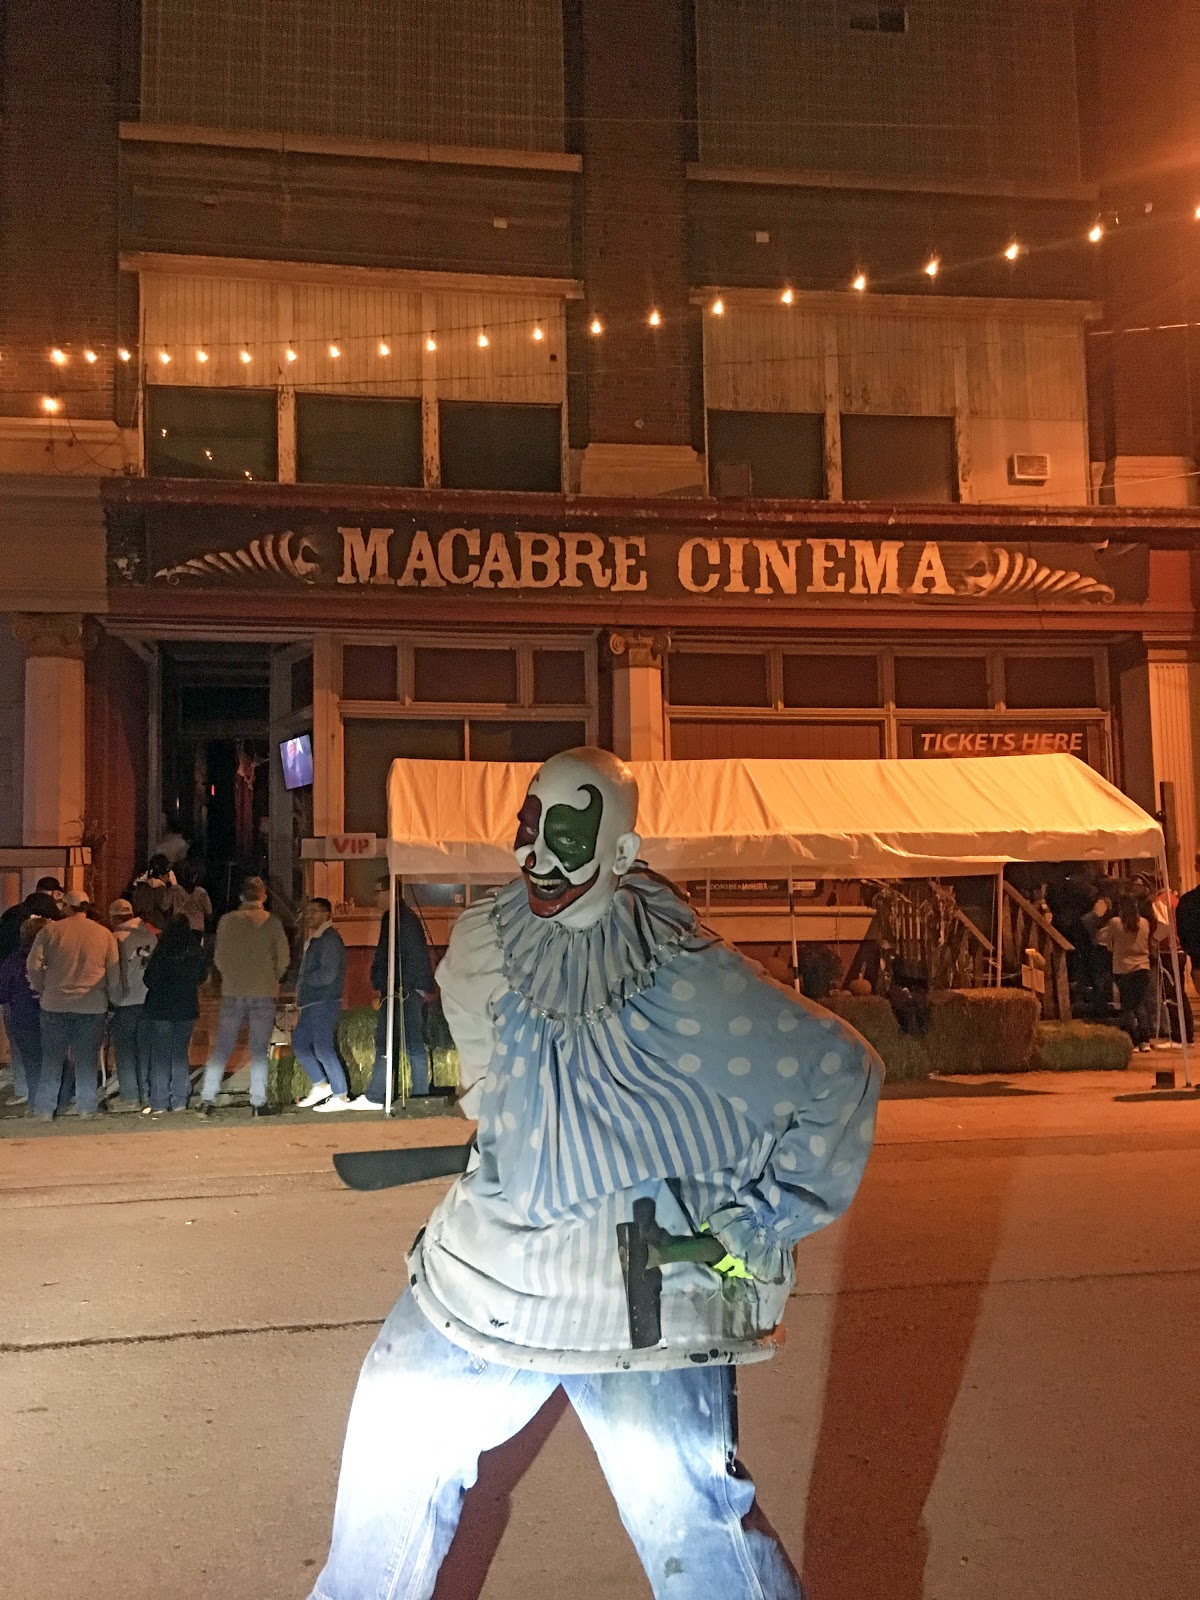 Kansas City Has The Best Haunted House In The U S This Kc Q Shows Why That S Dead On Kansas City Public Library